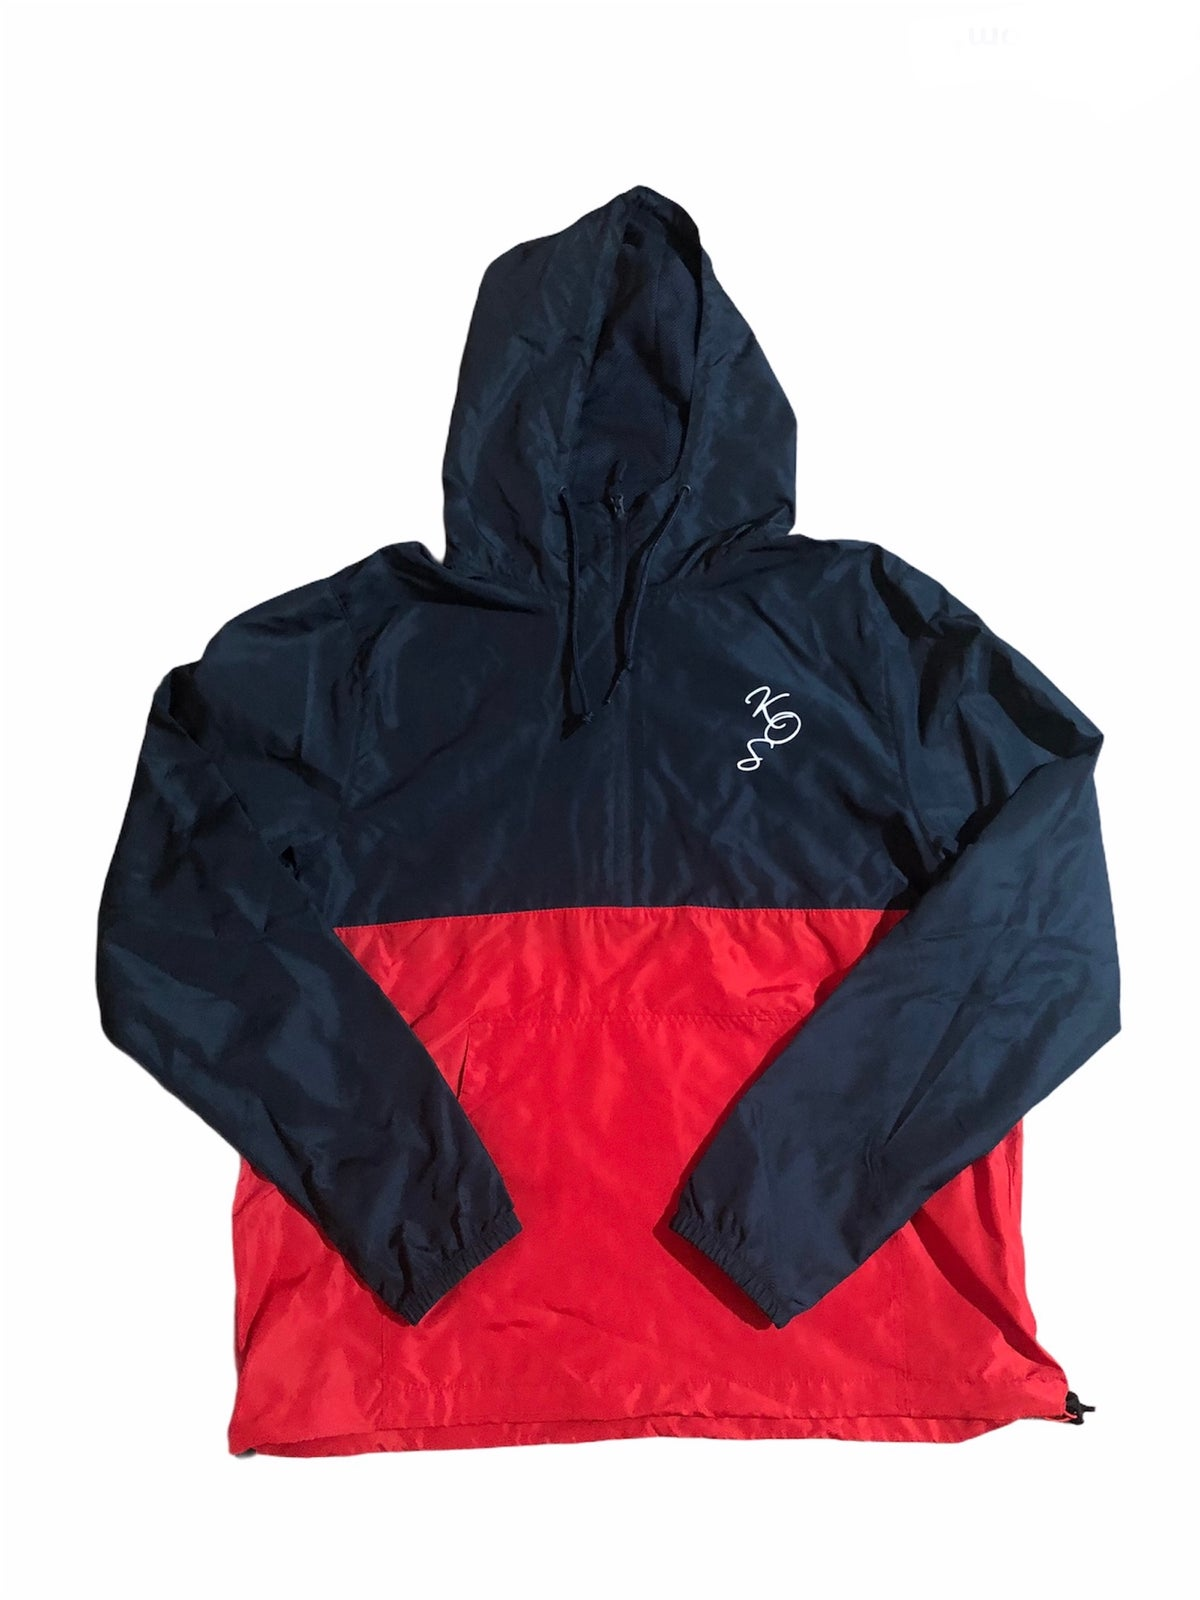 Image of The Knowledge Half Zip Windbreaker